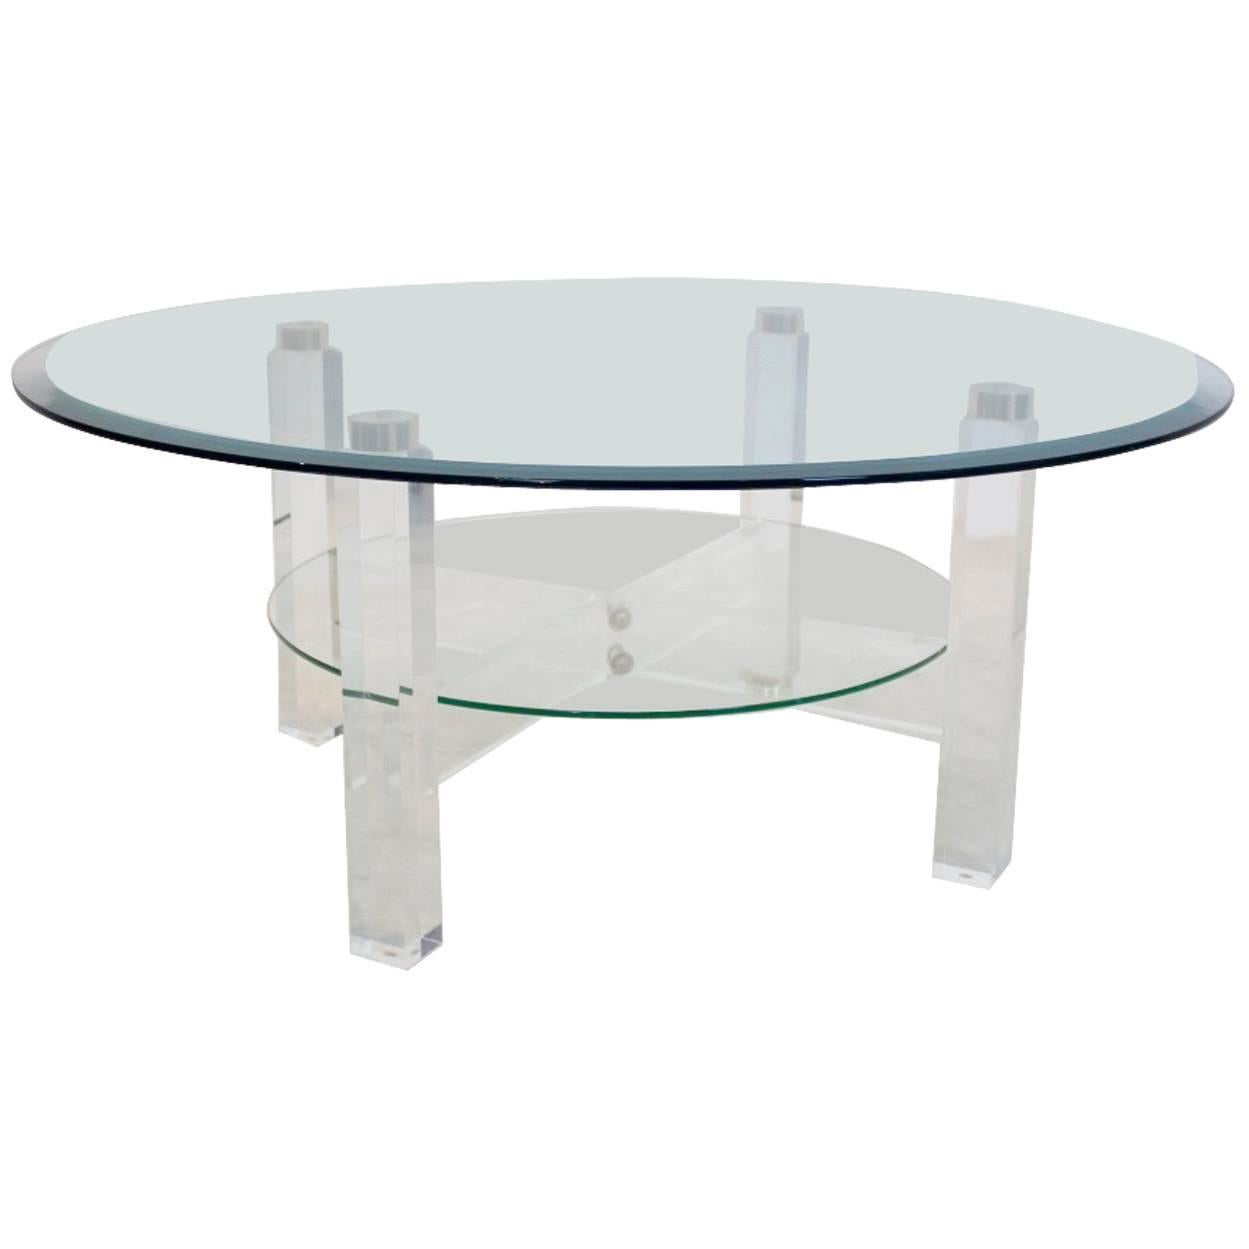 Glamorous Lucite, Brass and Glass Coffee Table, Belgium, 1970s